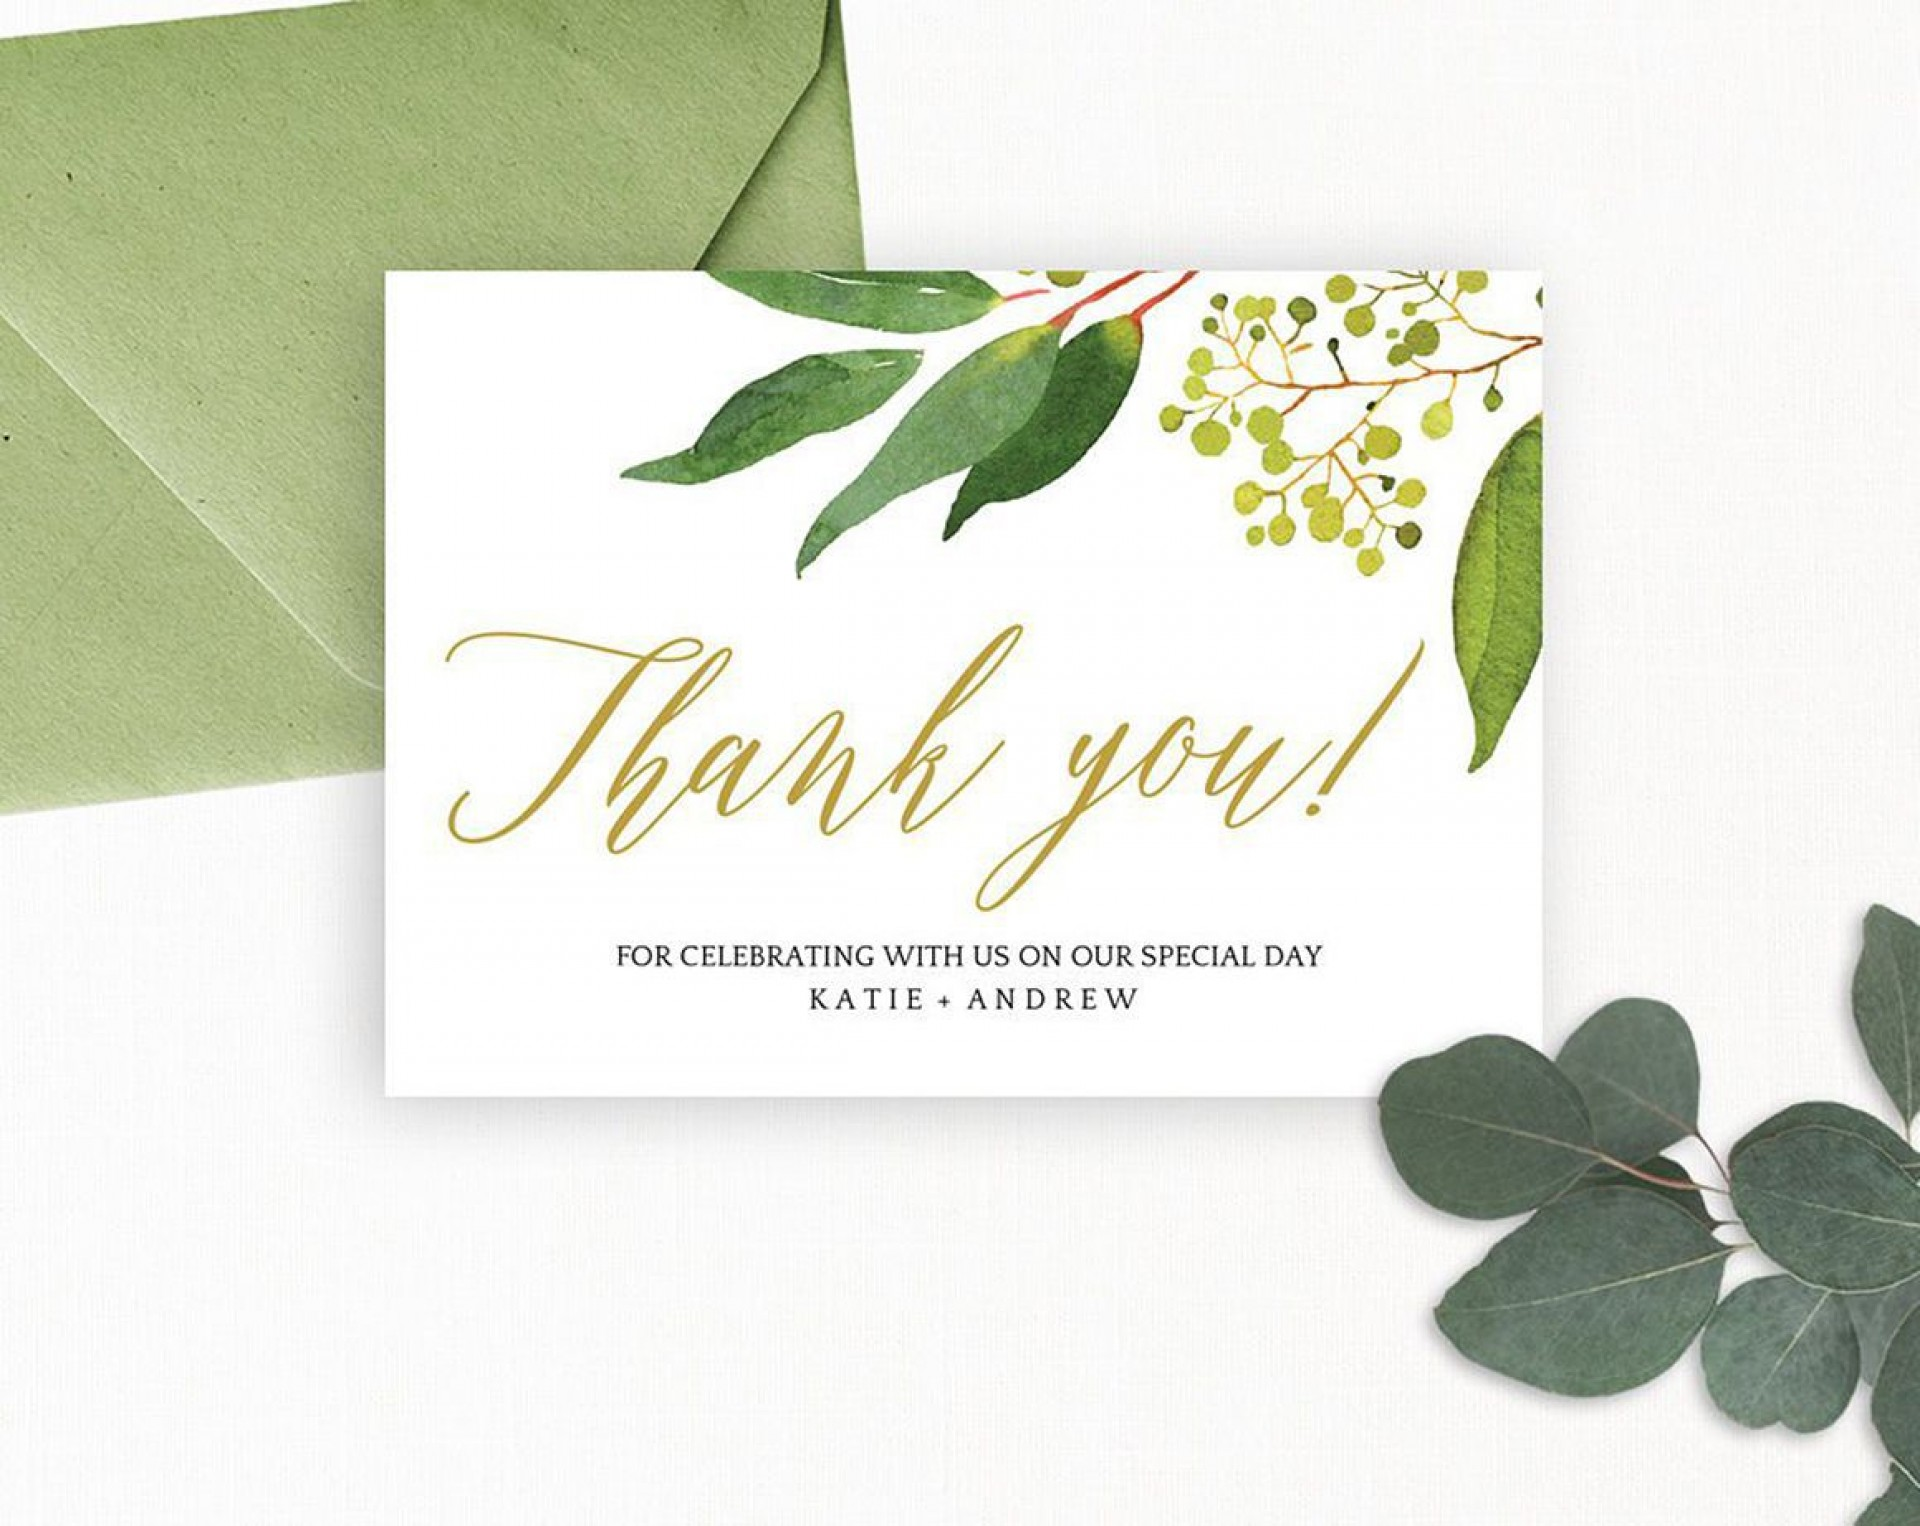 007 Awesome Wedding Thank You Card Template Psd Concept  Free1920